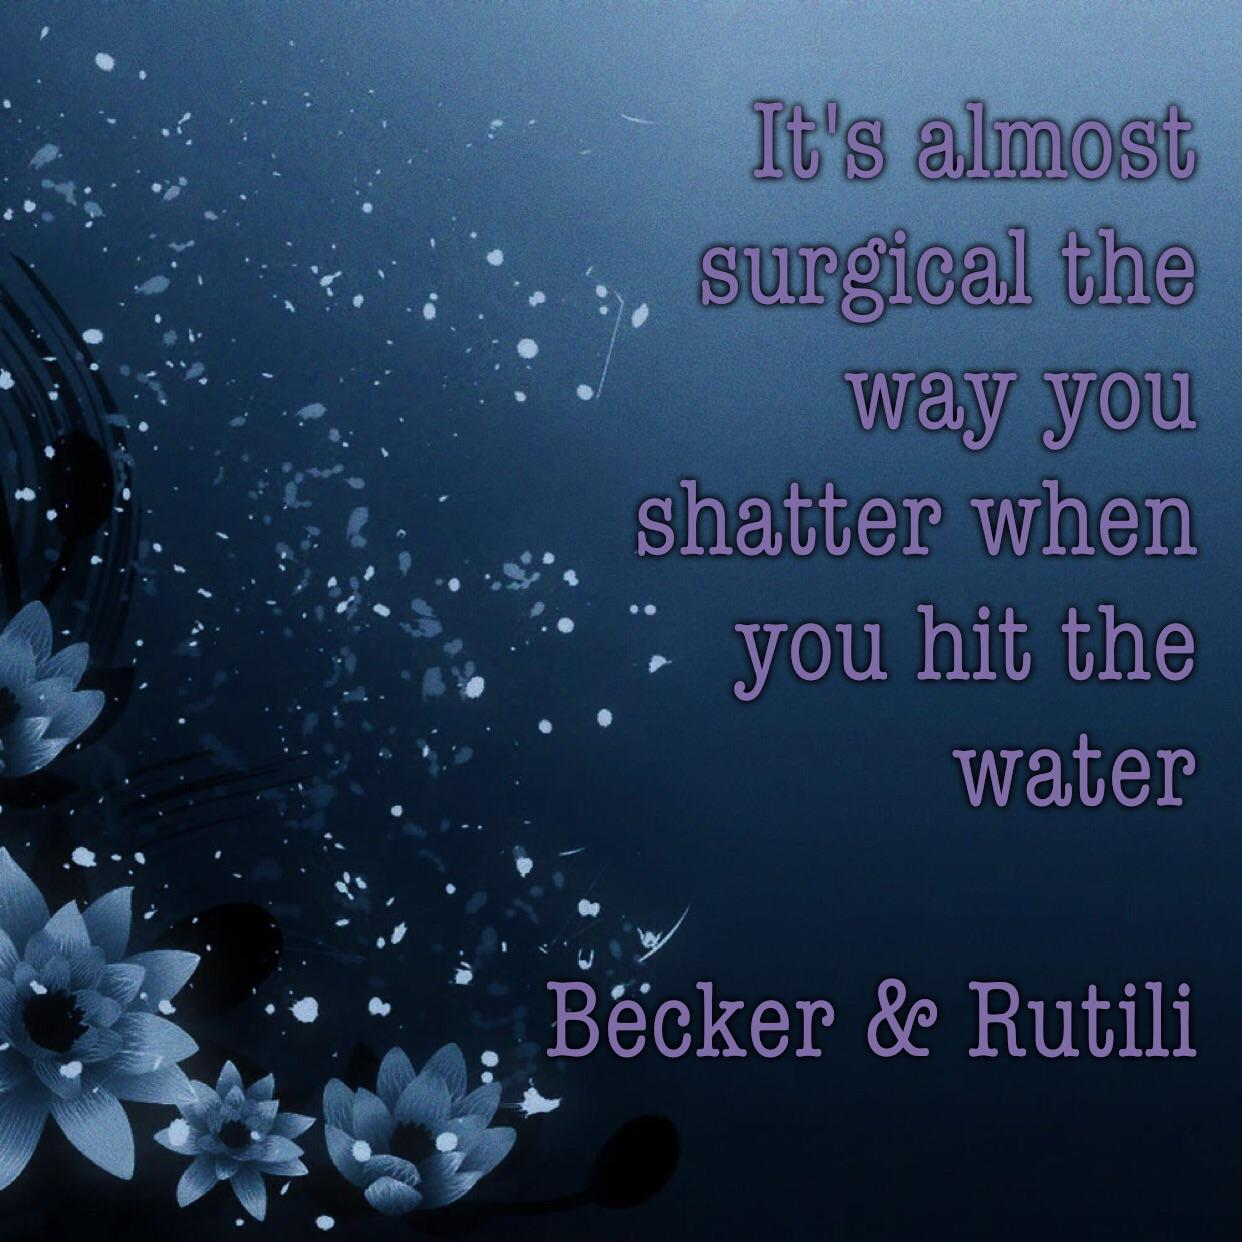 """It's almost surgical the way you shatter when you hit the water"" – Becker & Rutili (Califone) [1242×1242]"